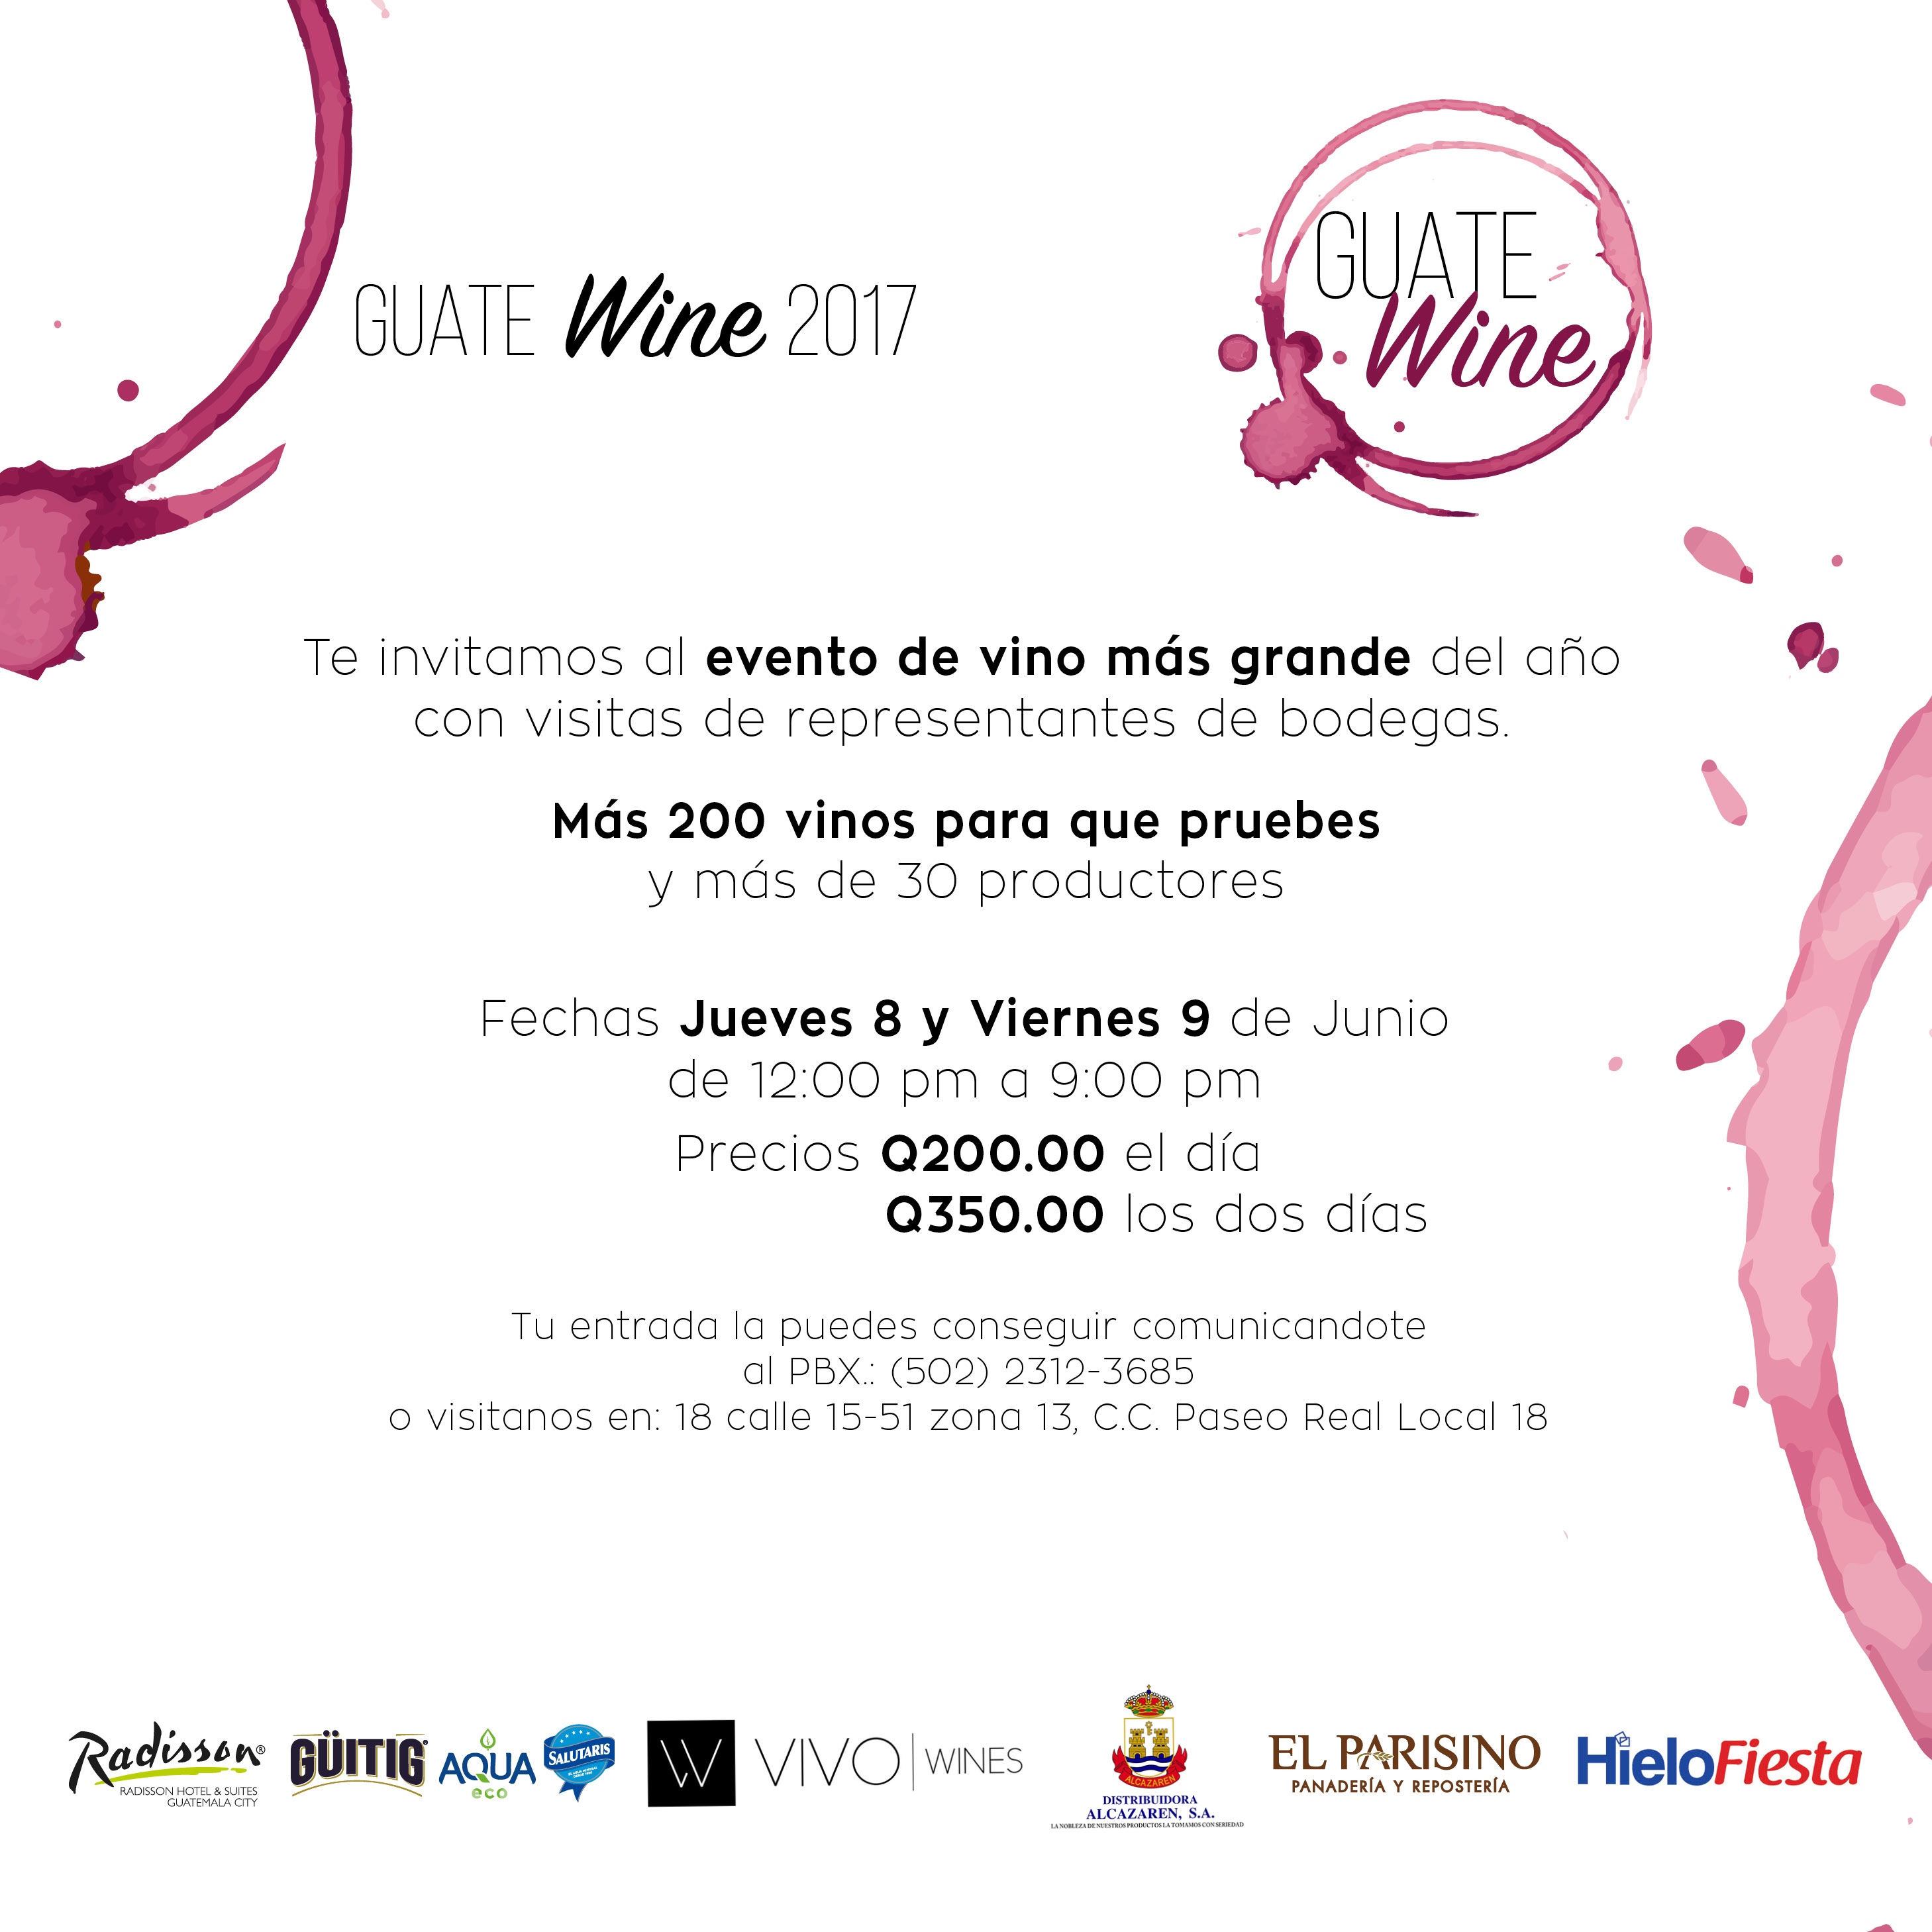 GuateWine 2017